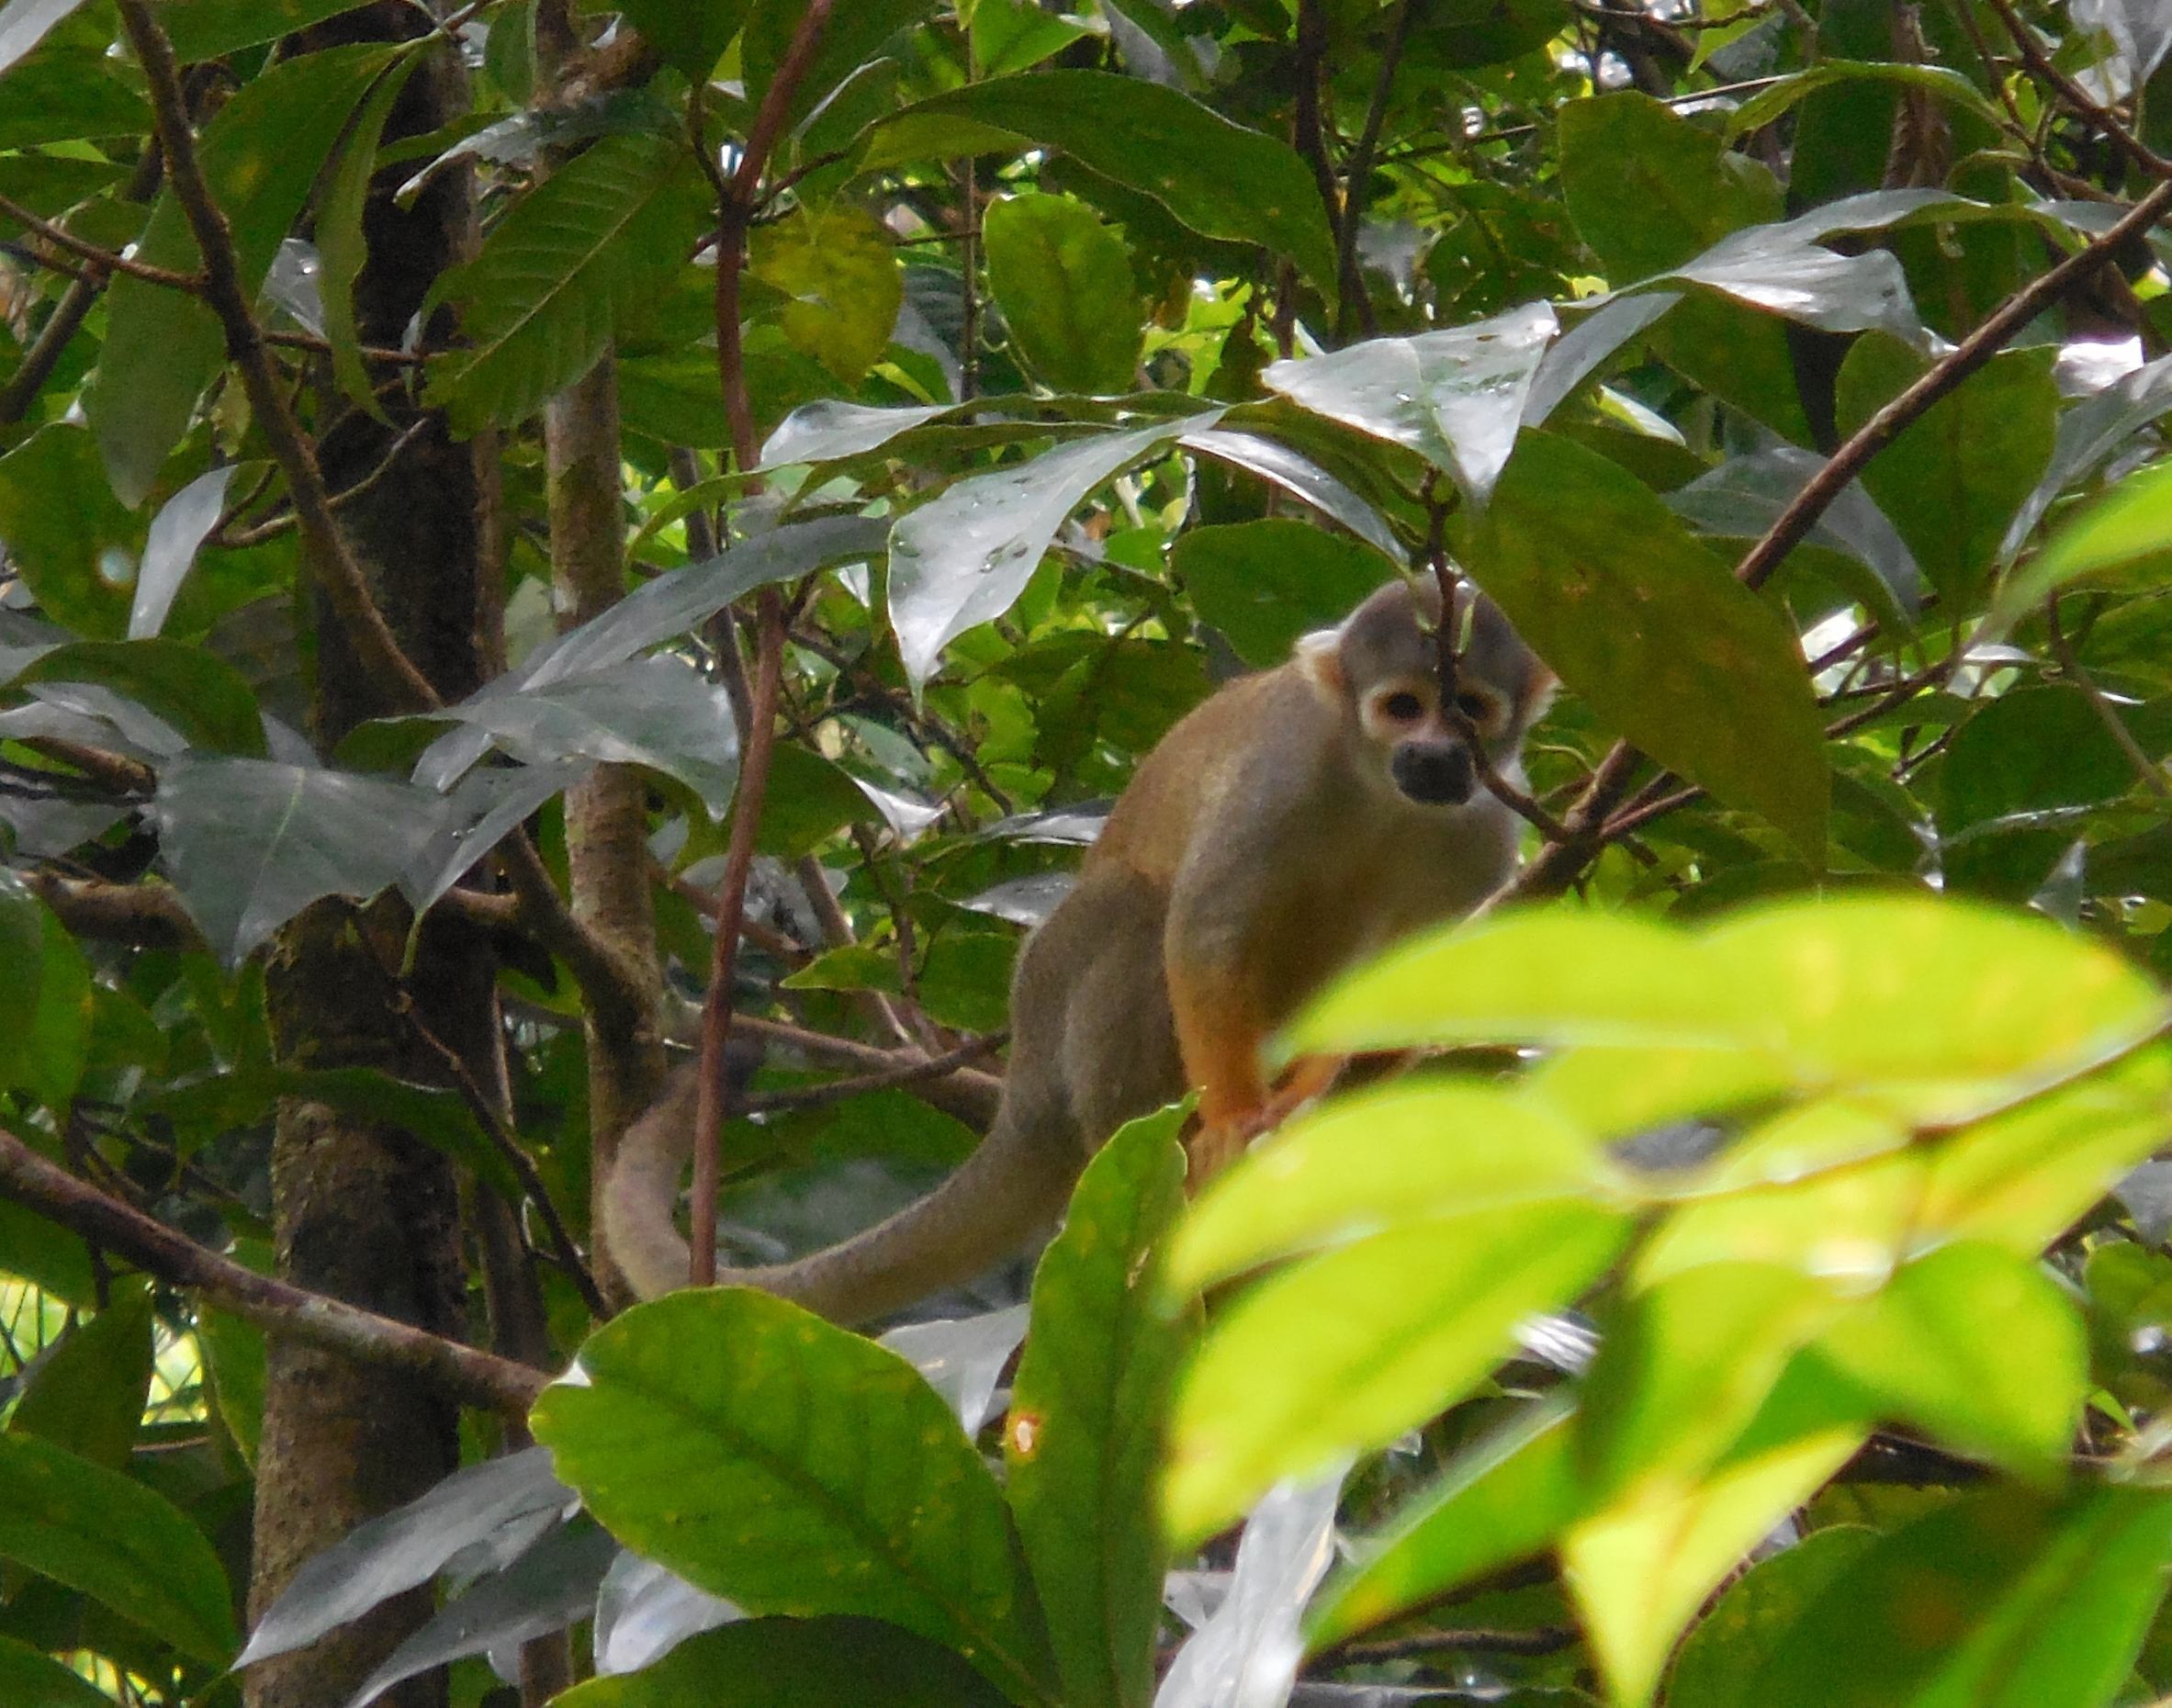 another squirrel monkey